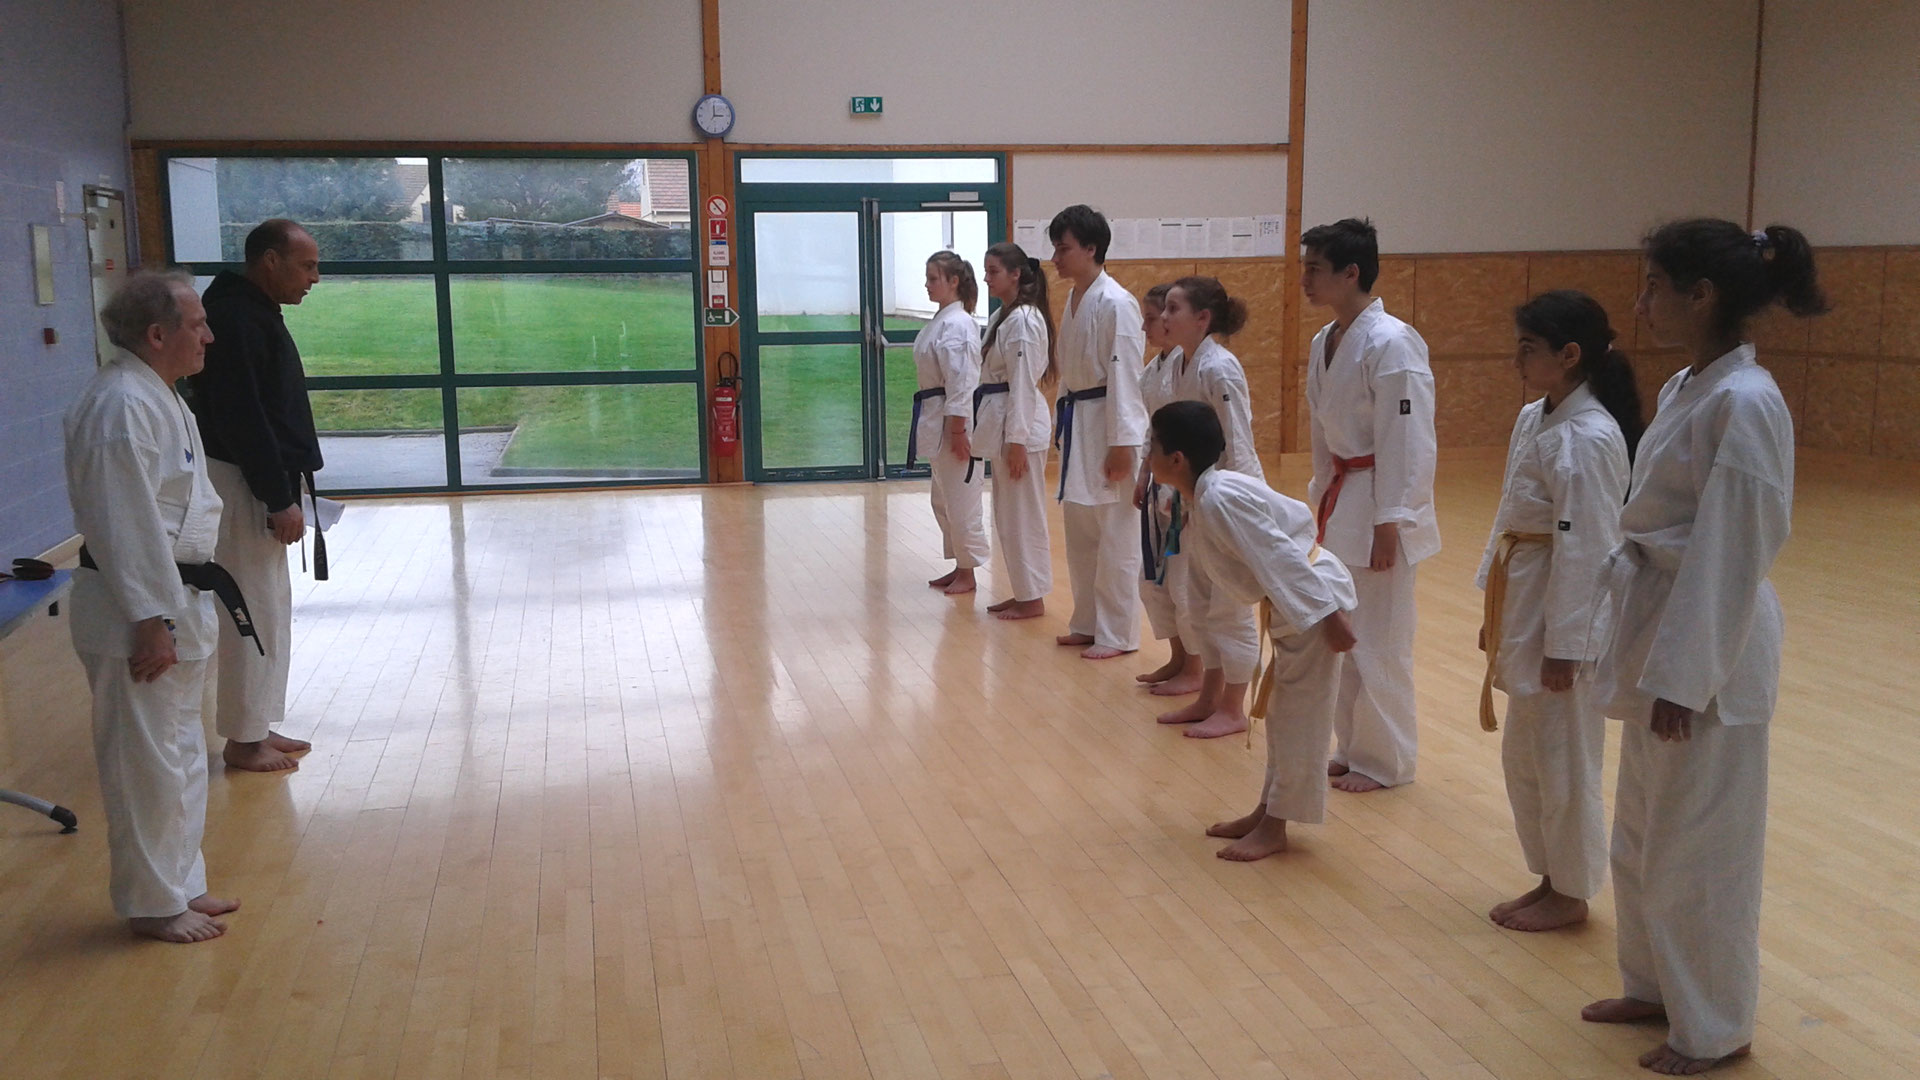 karate club isneauville kcis jimdo page